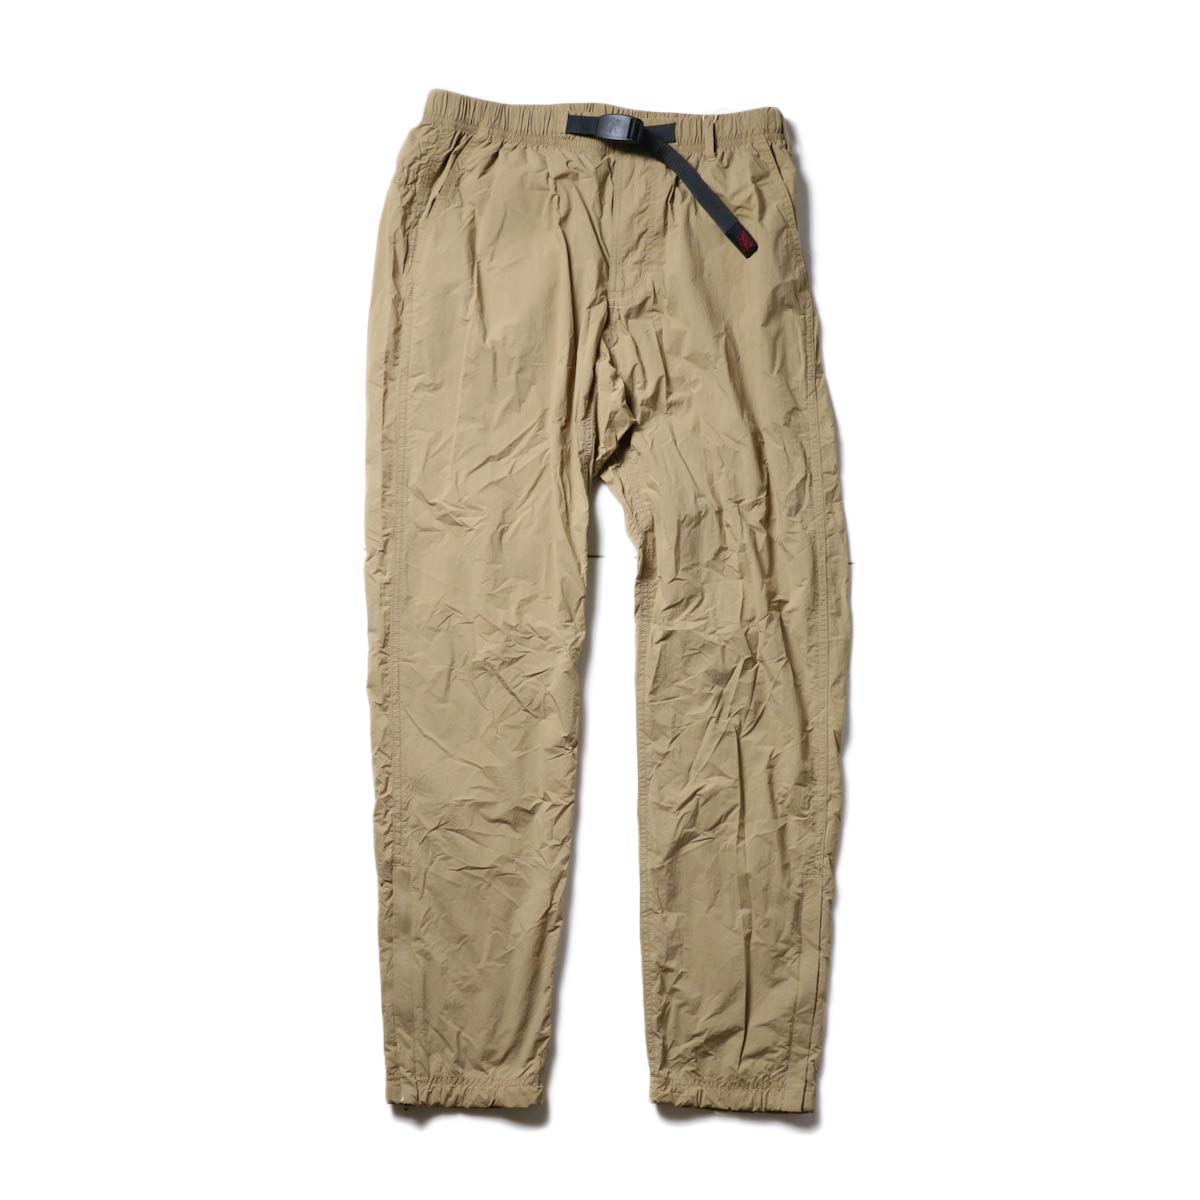 GRAMICCI / PACKABLE TRACK PANTS (Chino)